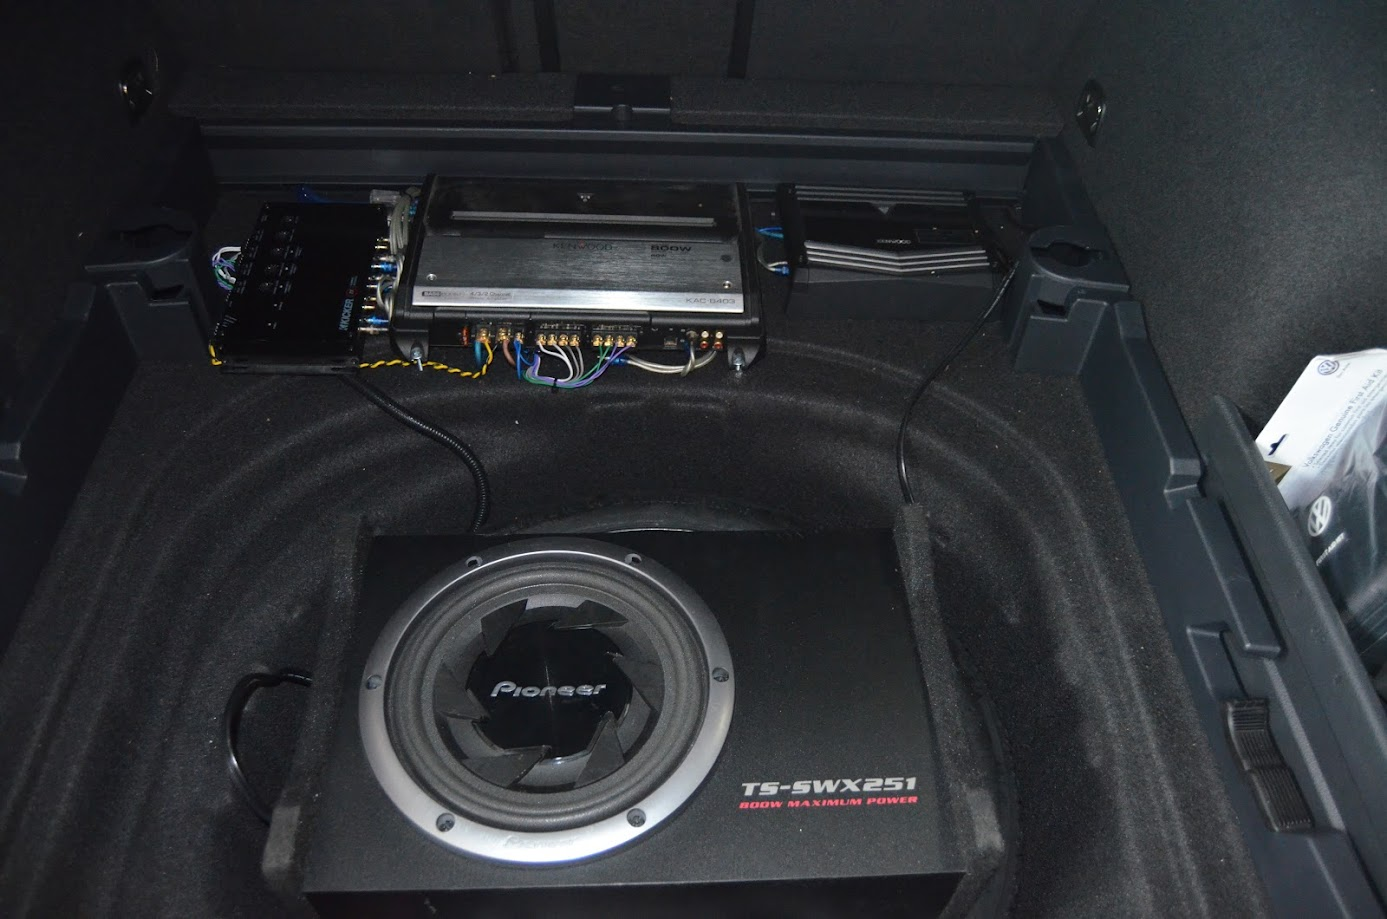 Sound System Upgrades For Golf Sportwagen Tdiclub Forums